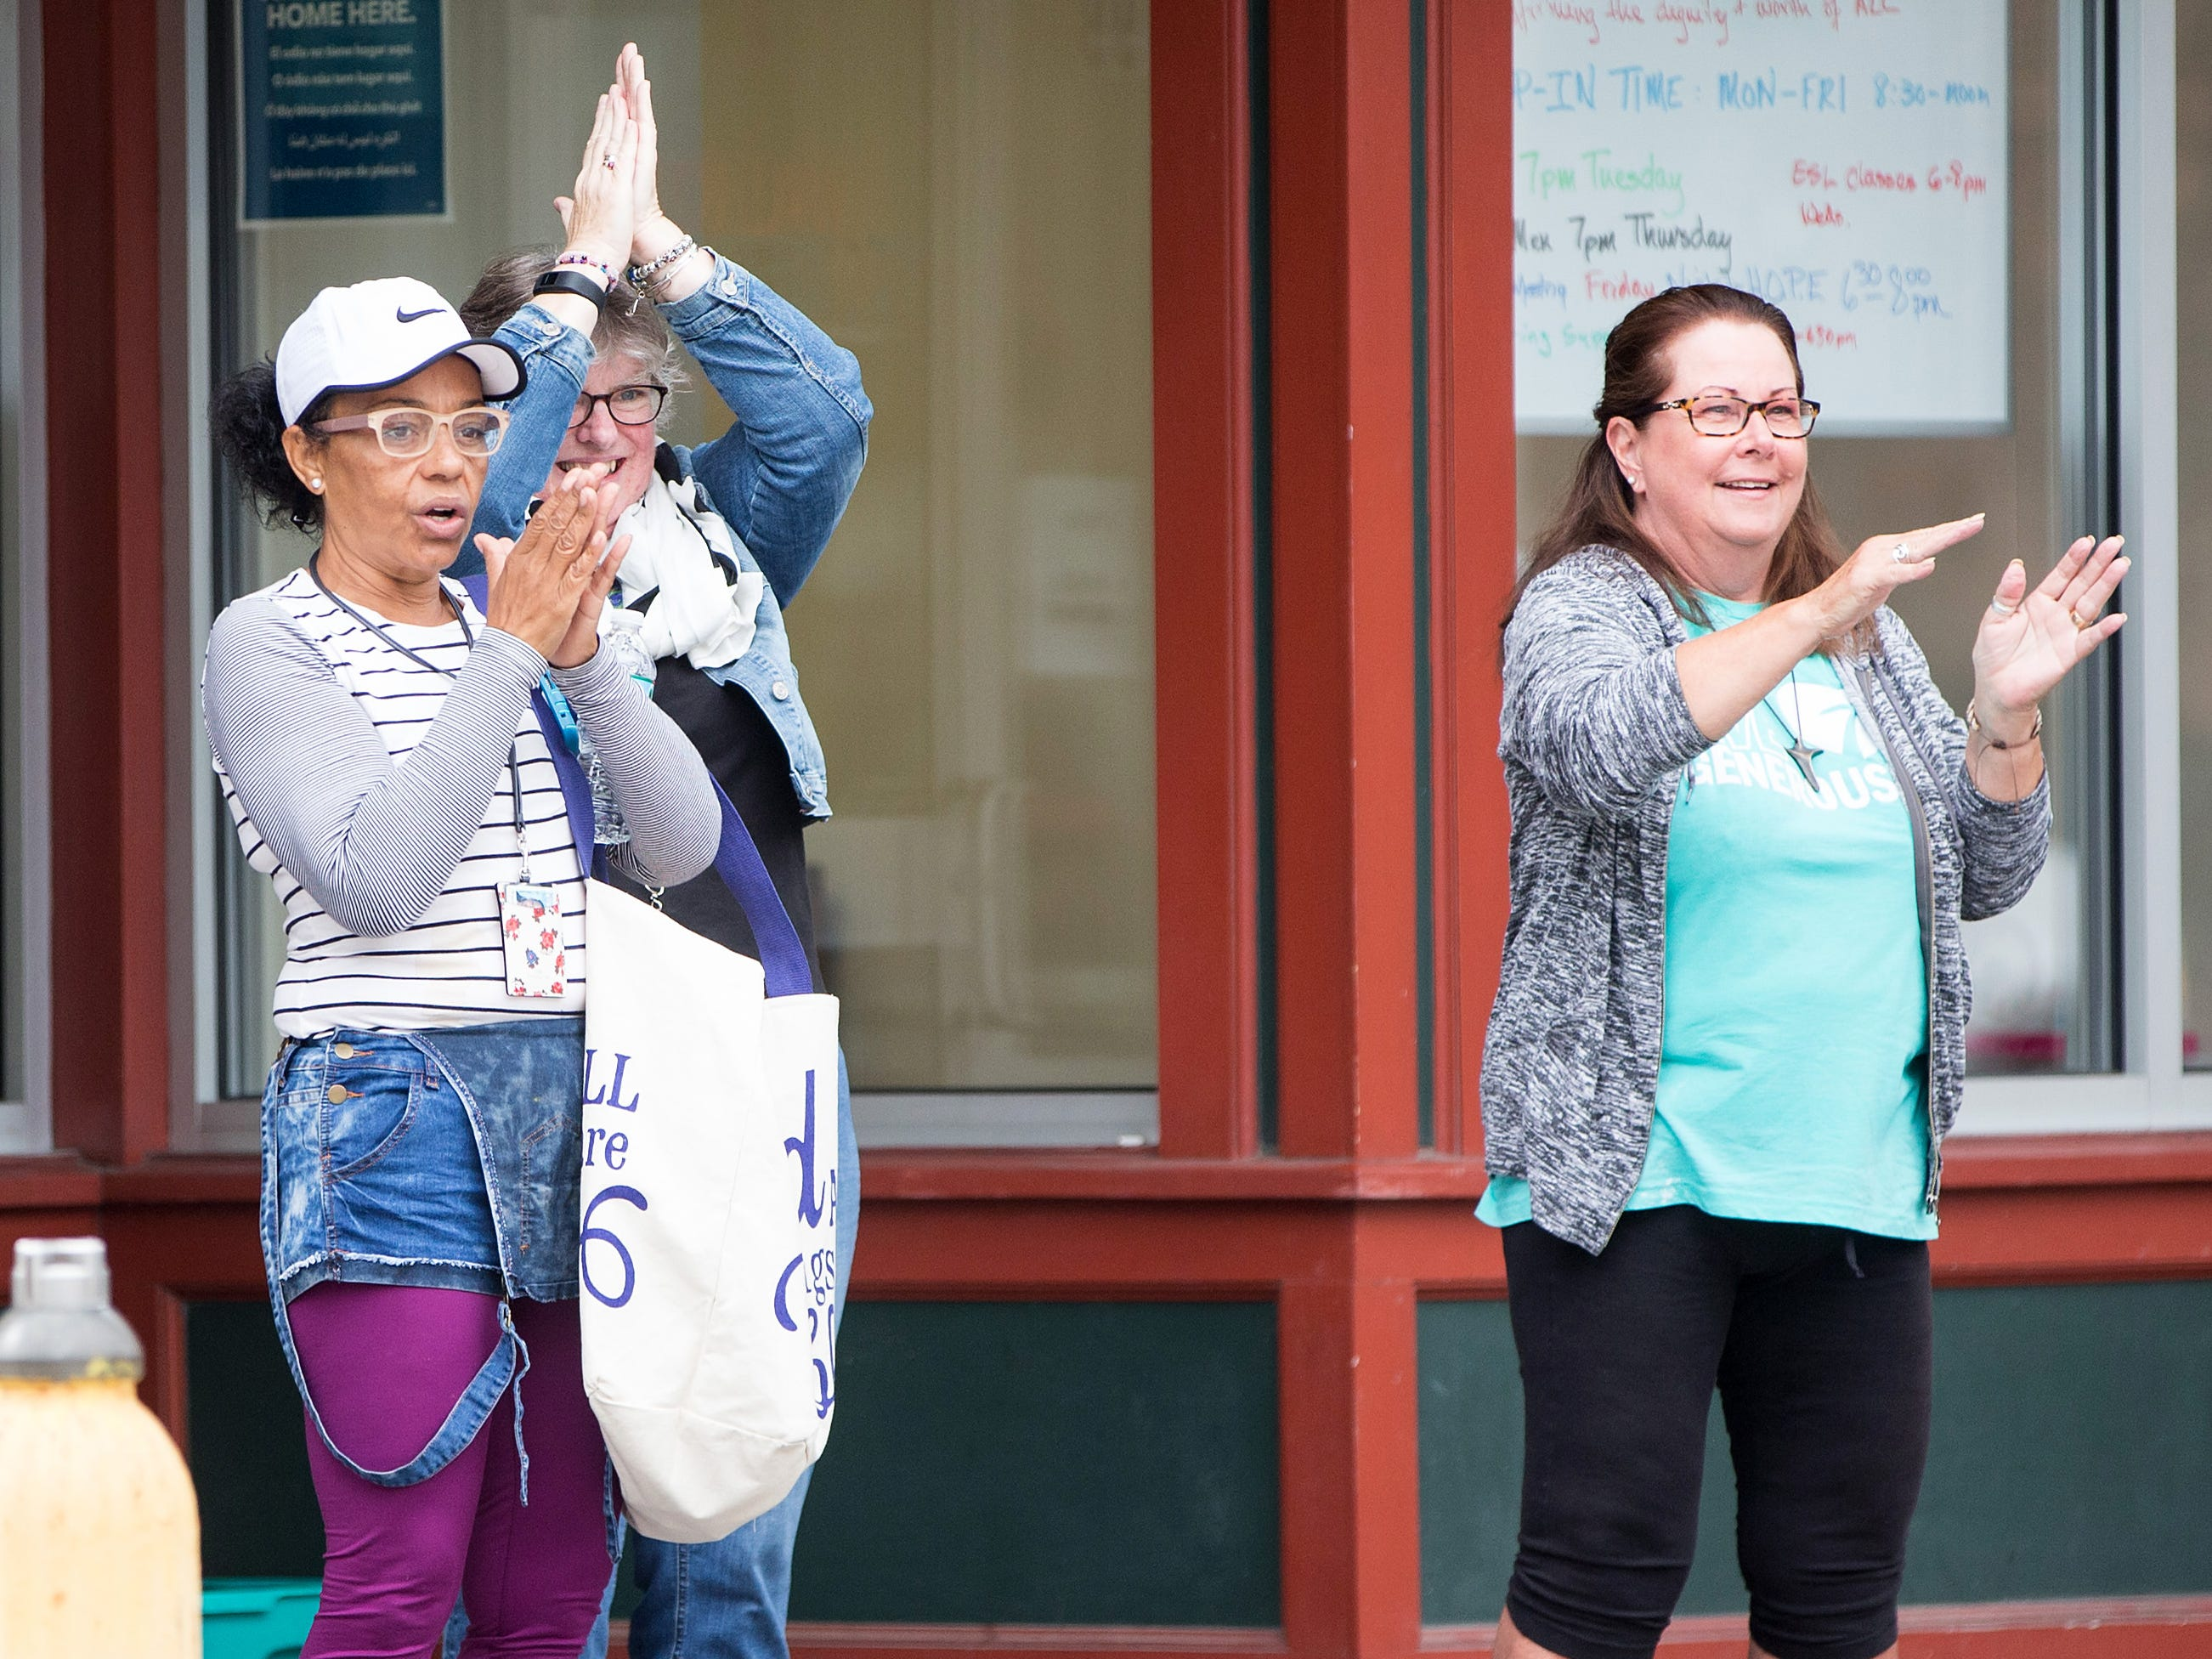 Onlookers applaud as the 50 Miles More walk against gun violence passes by on Aug. 23, 2018 in Worcester, Mass.